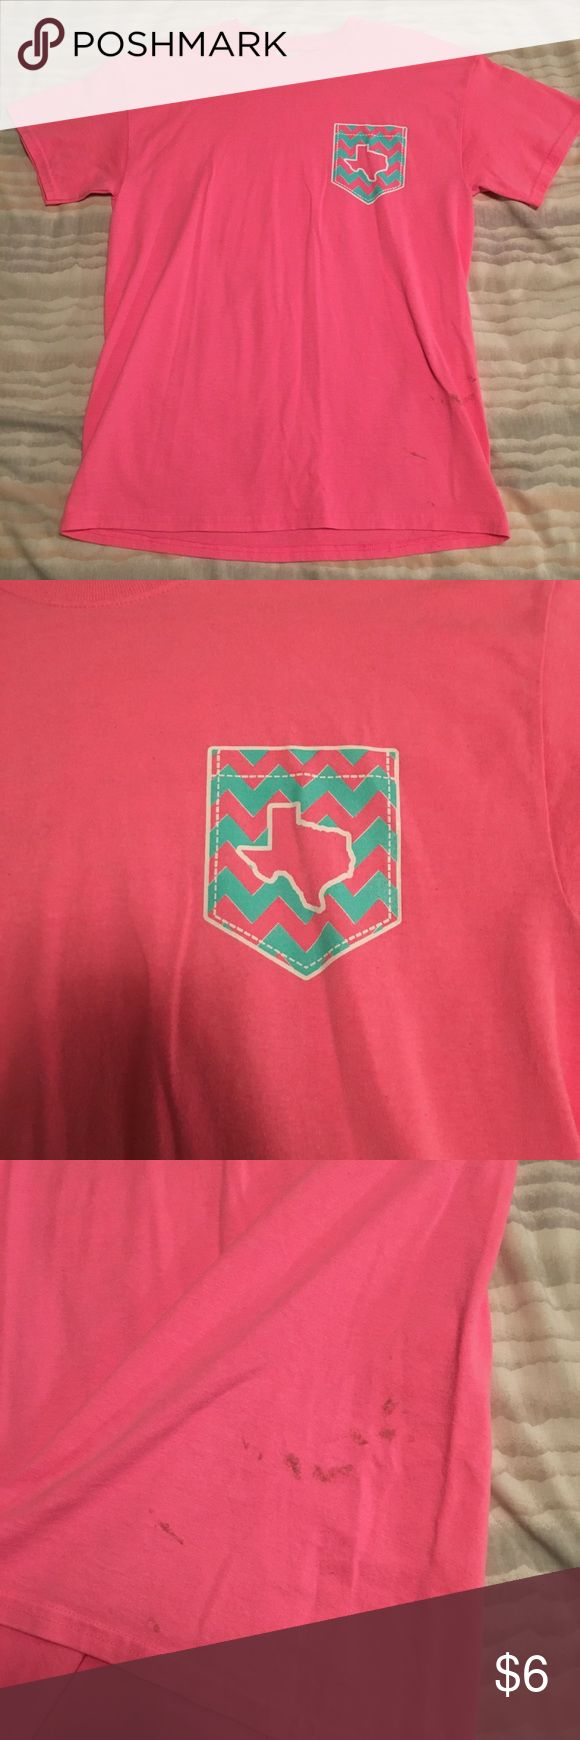 Hot pink Texas Tee Shirt! Please see photos! The lower front of the shirt has some staining. Price reflects it! Someone more talented than myself could get them out easily. Size Medium. By Gildan. Thanks for looking! Bundle and save! Gildan Tops Tees - Short Sleeve